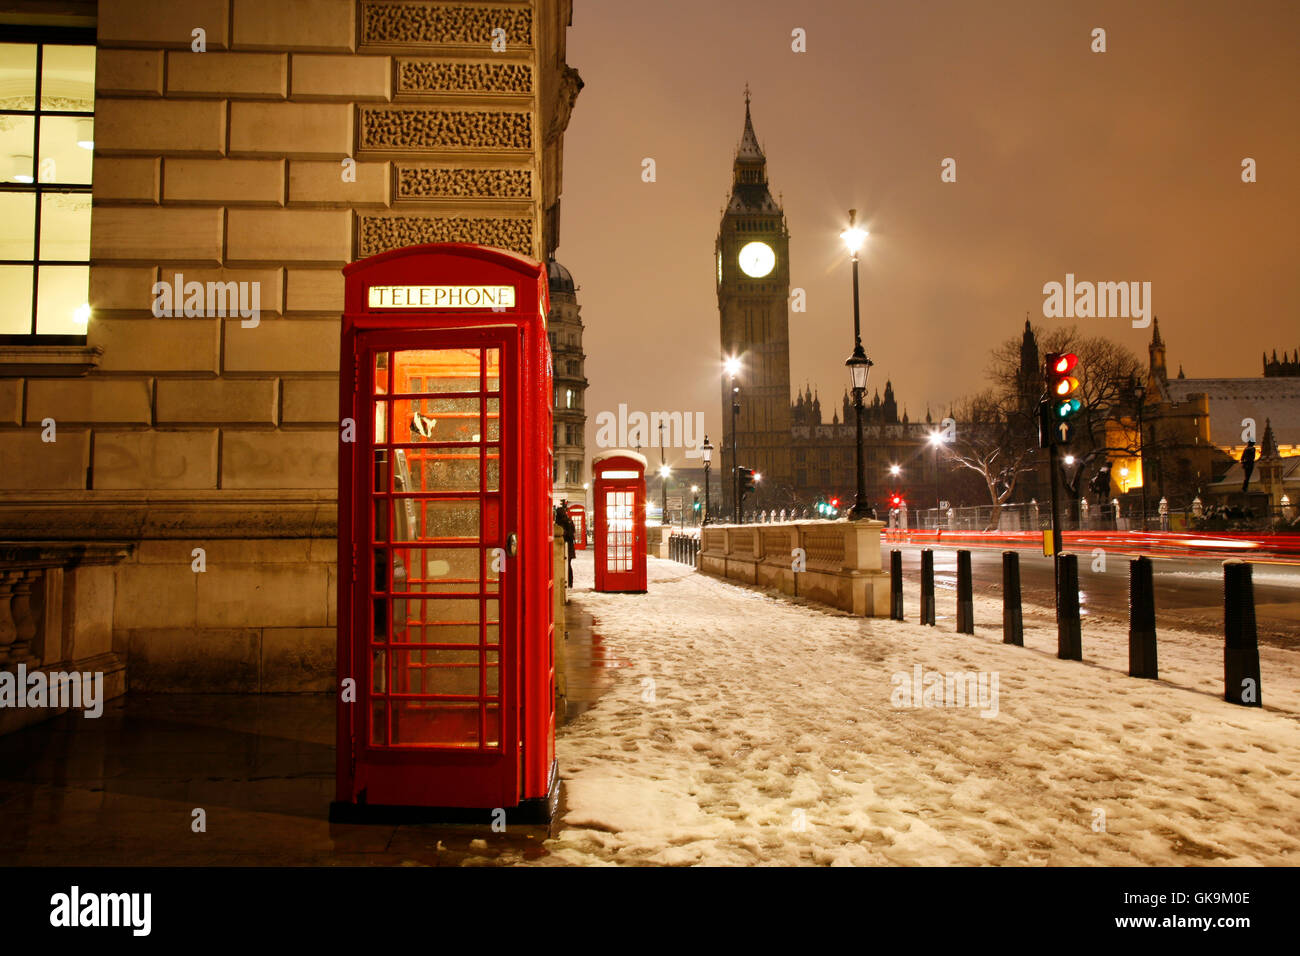 telephone box phonebooth telephone kiosk - Stock Image